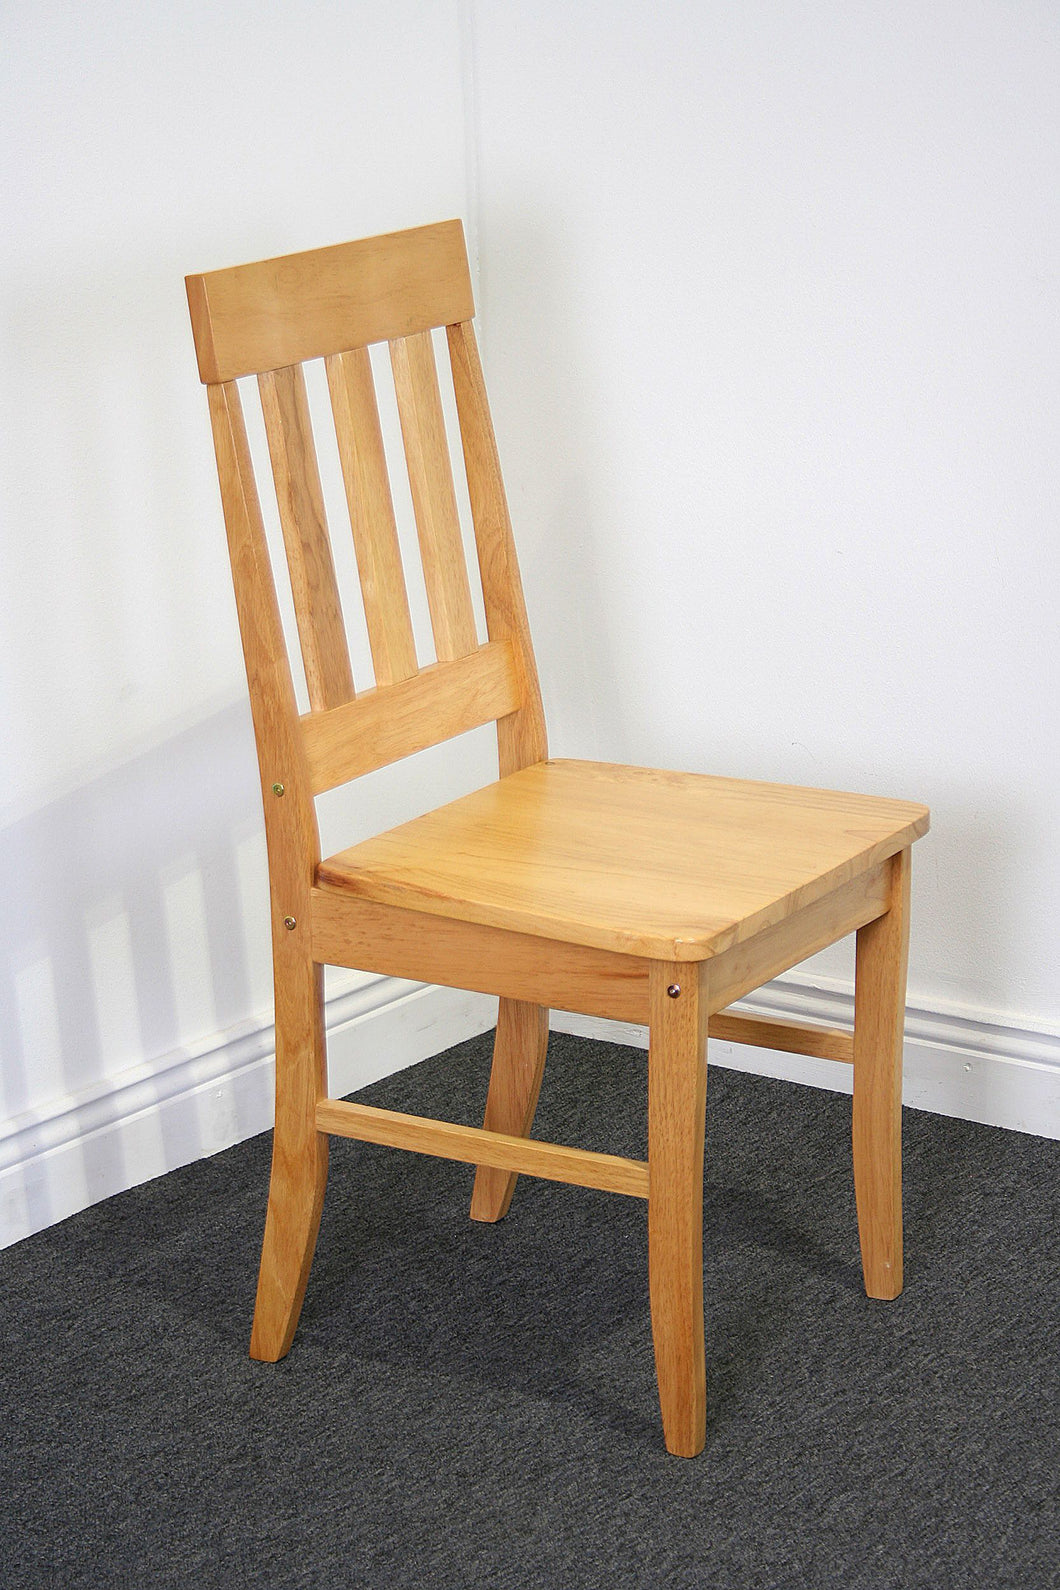 Milton chair with wood seat, flatpack